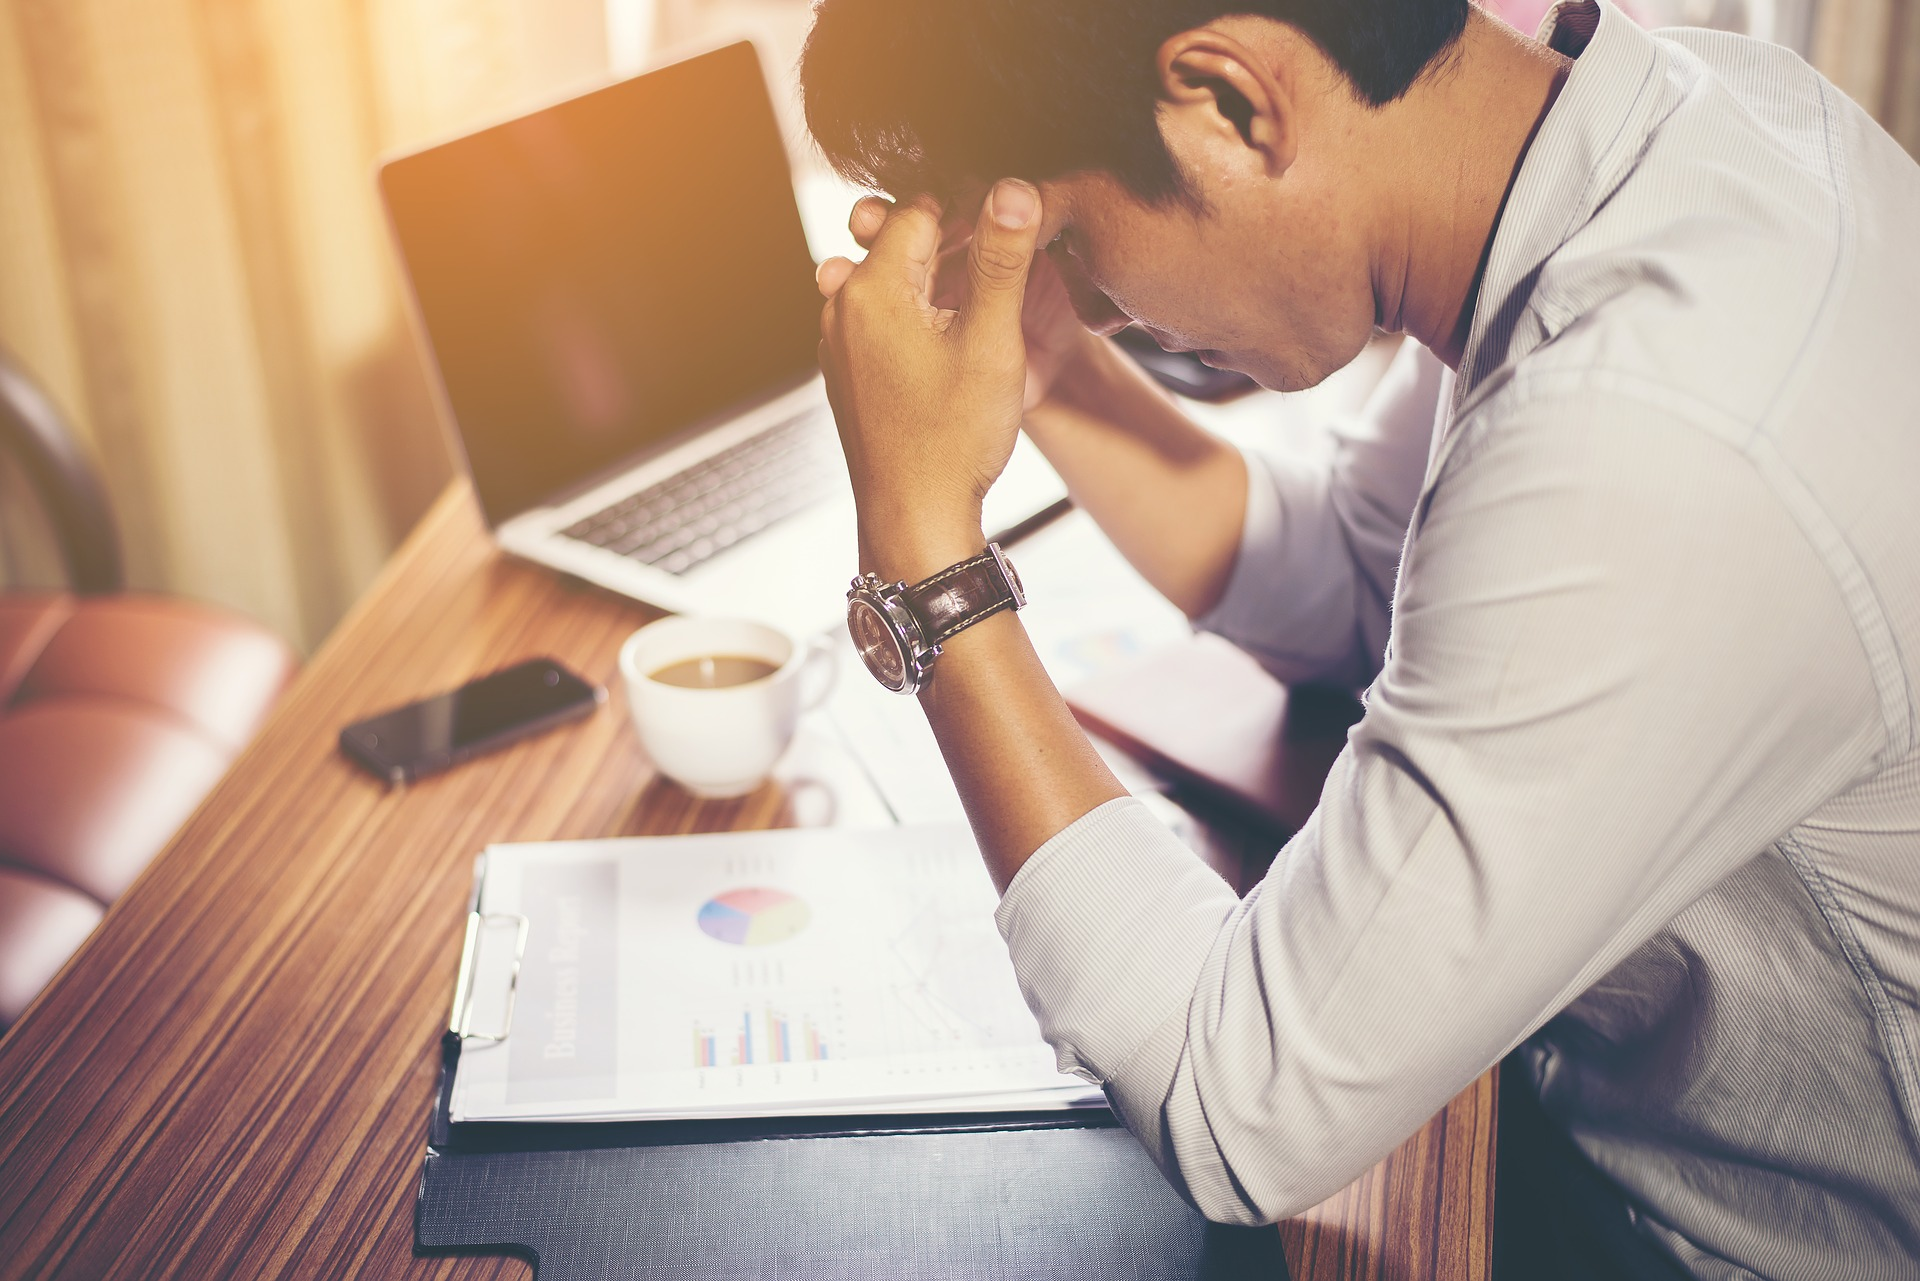 Stressed Out? You May Be Too Conscientious